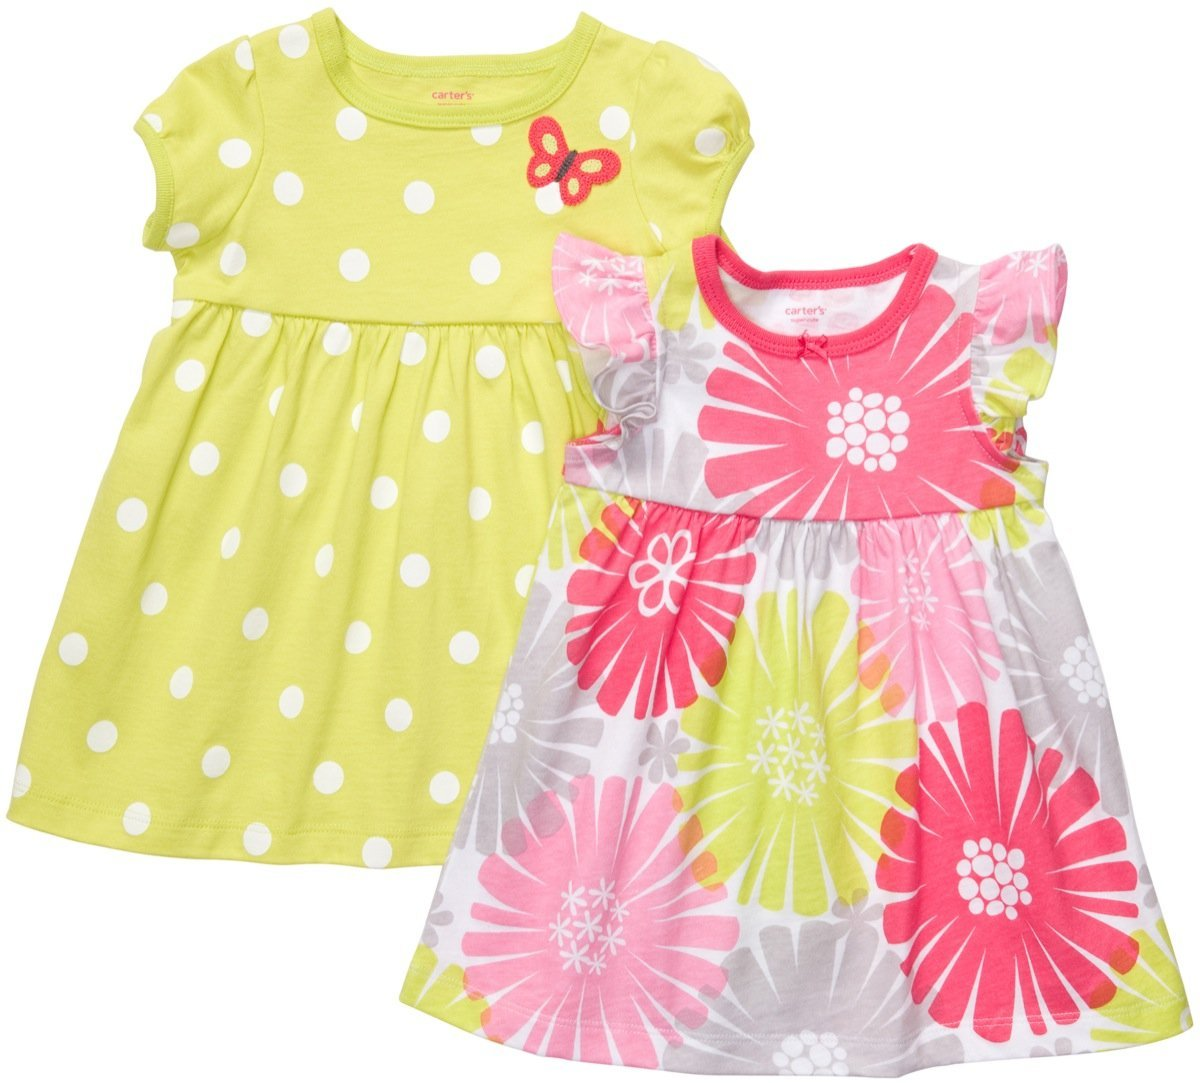 Shop for Girls Dresses! Designer & brand items for infant, toddler, baby girl, little girl, big girl or plus size girls · Latest collection · Free shipping over $ .